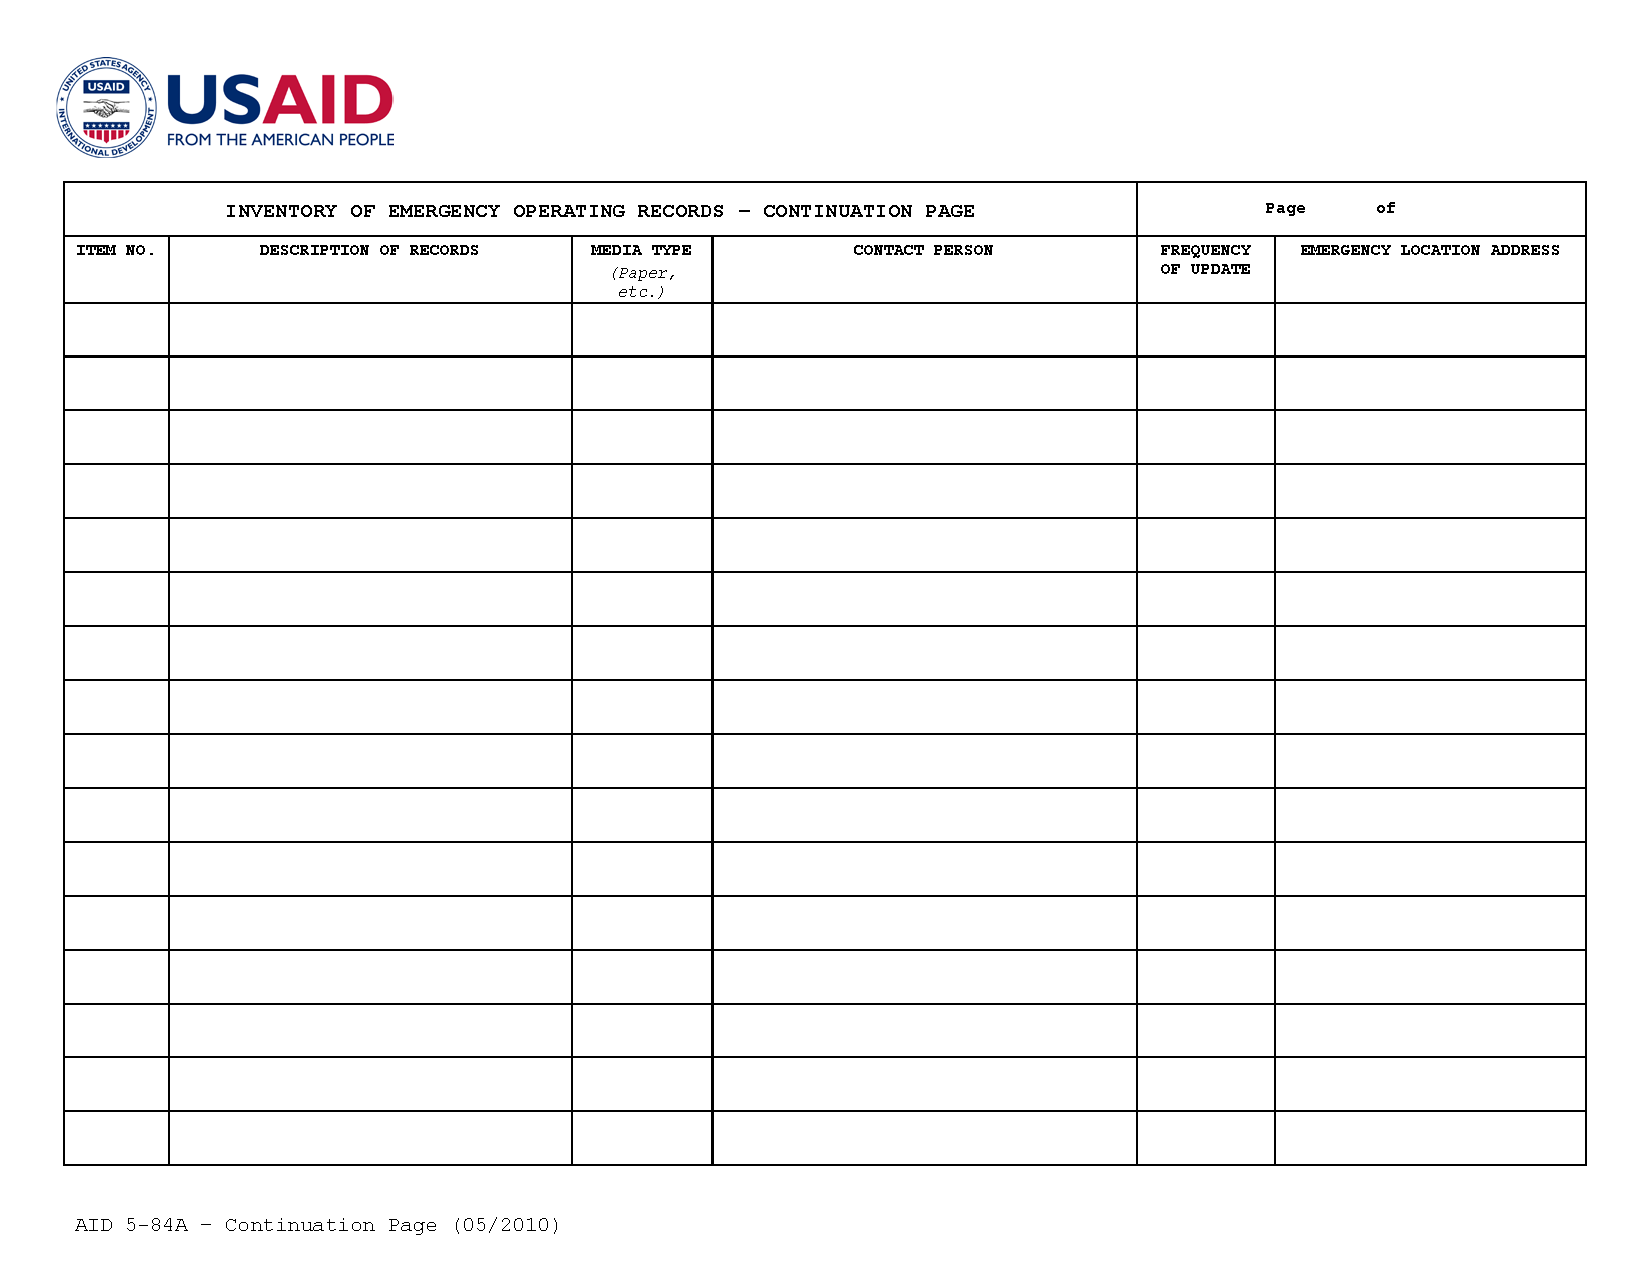 Aid 5 84a Inventory Of Emergency Operating Records